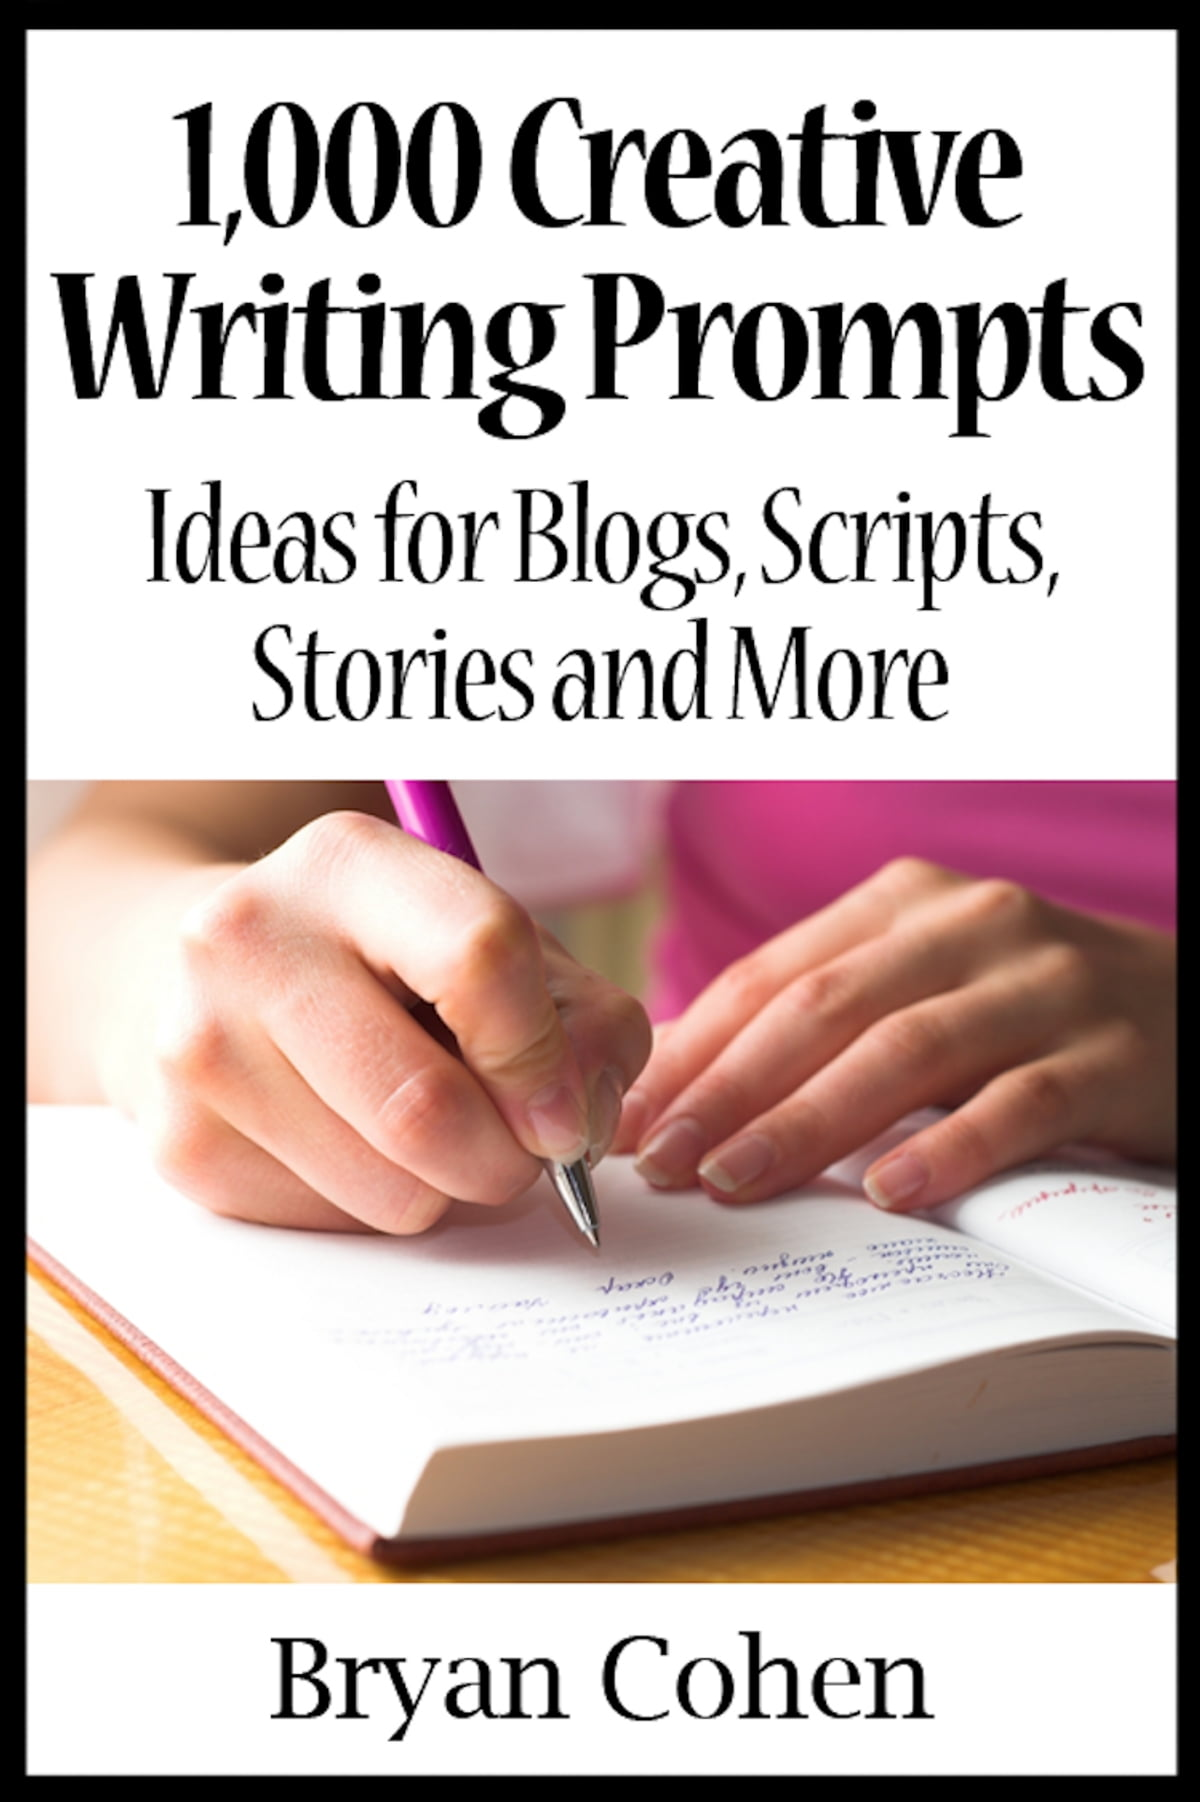 1,000 Creative Writing Prompts: Ideas for Blogs, Scripts, Stories and More  eBook by Bryan Cohen - 1230000237893 | Rakuten Kobo